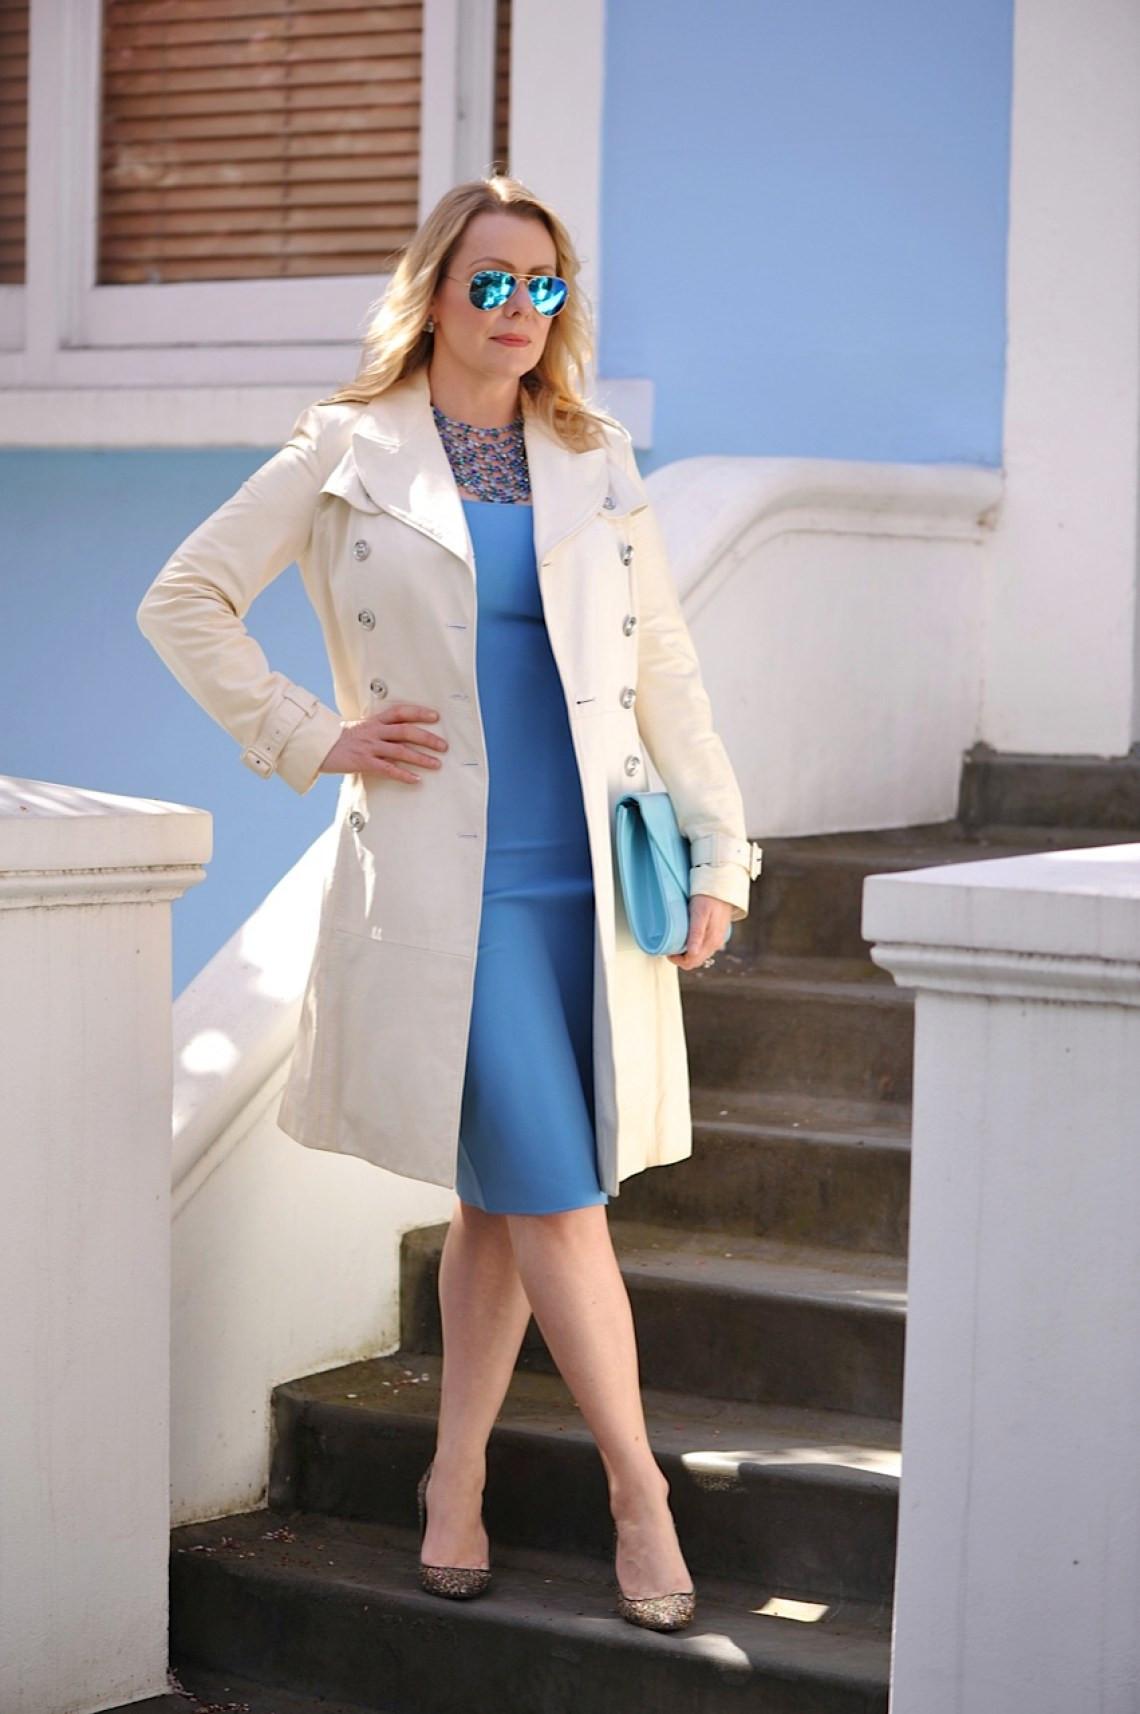 Sky blue dress and white coat